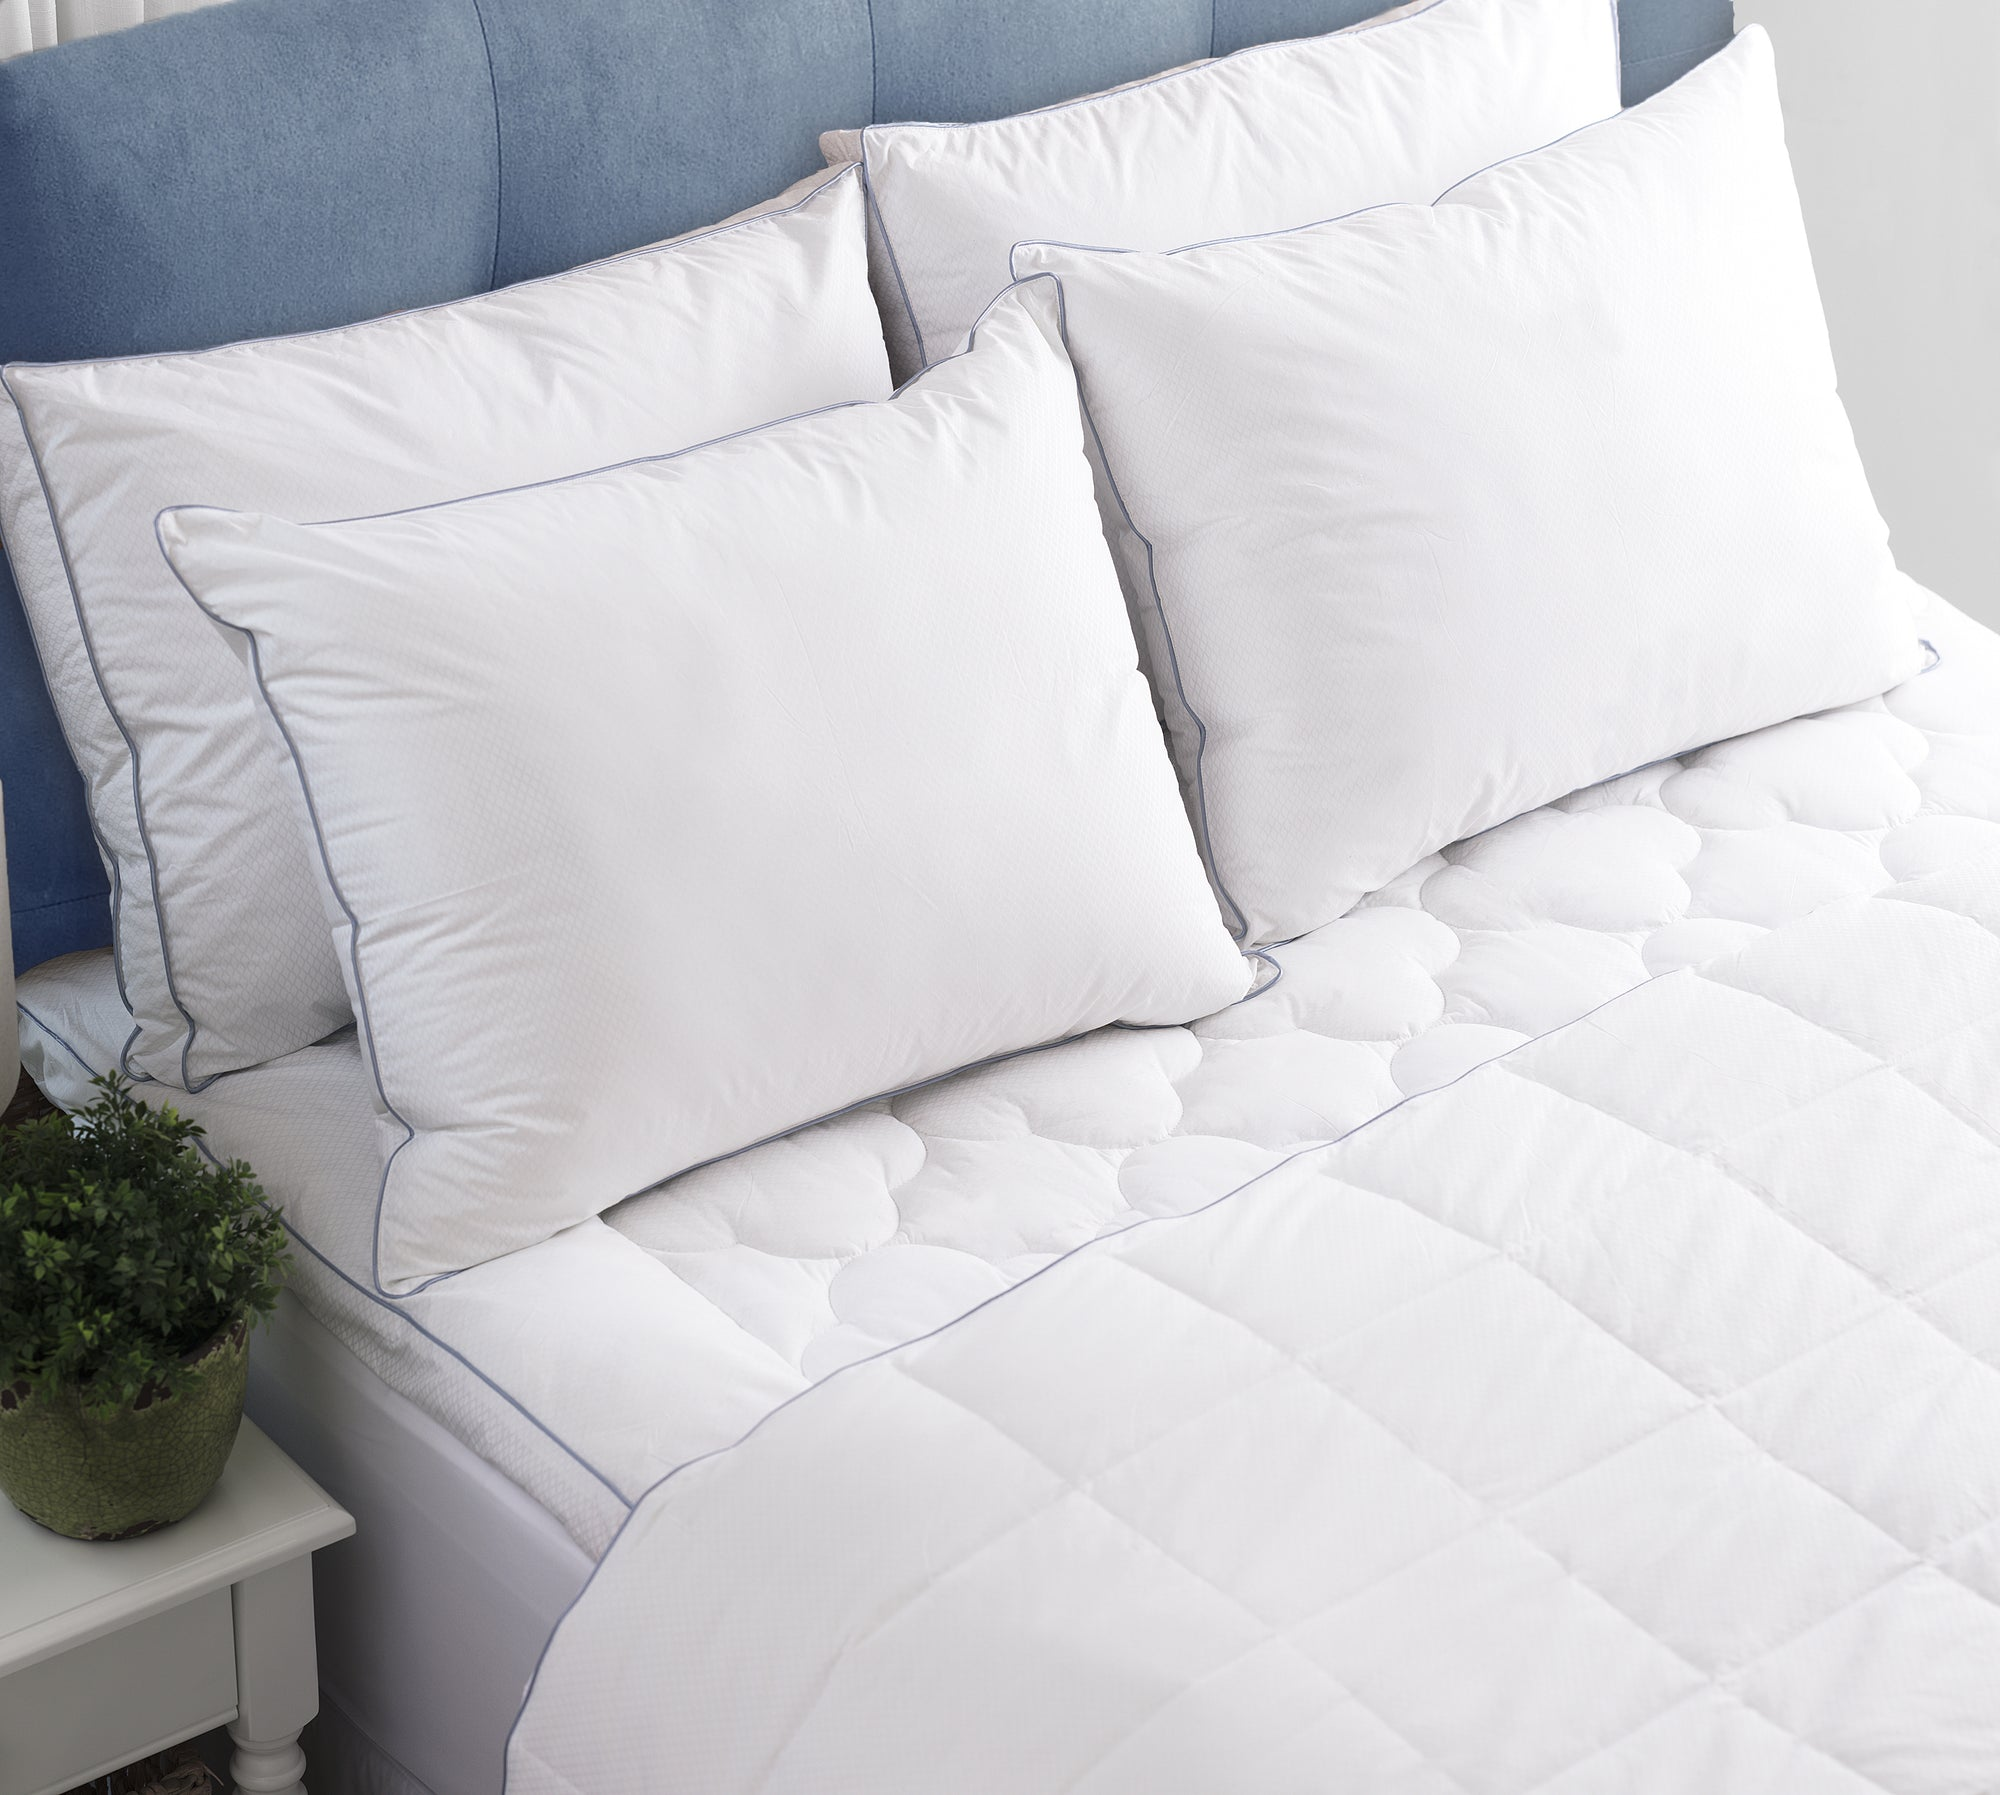 Climarest Cooling Mattress Pad